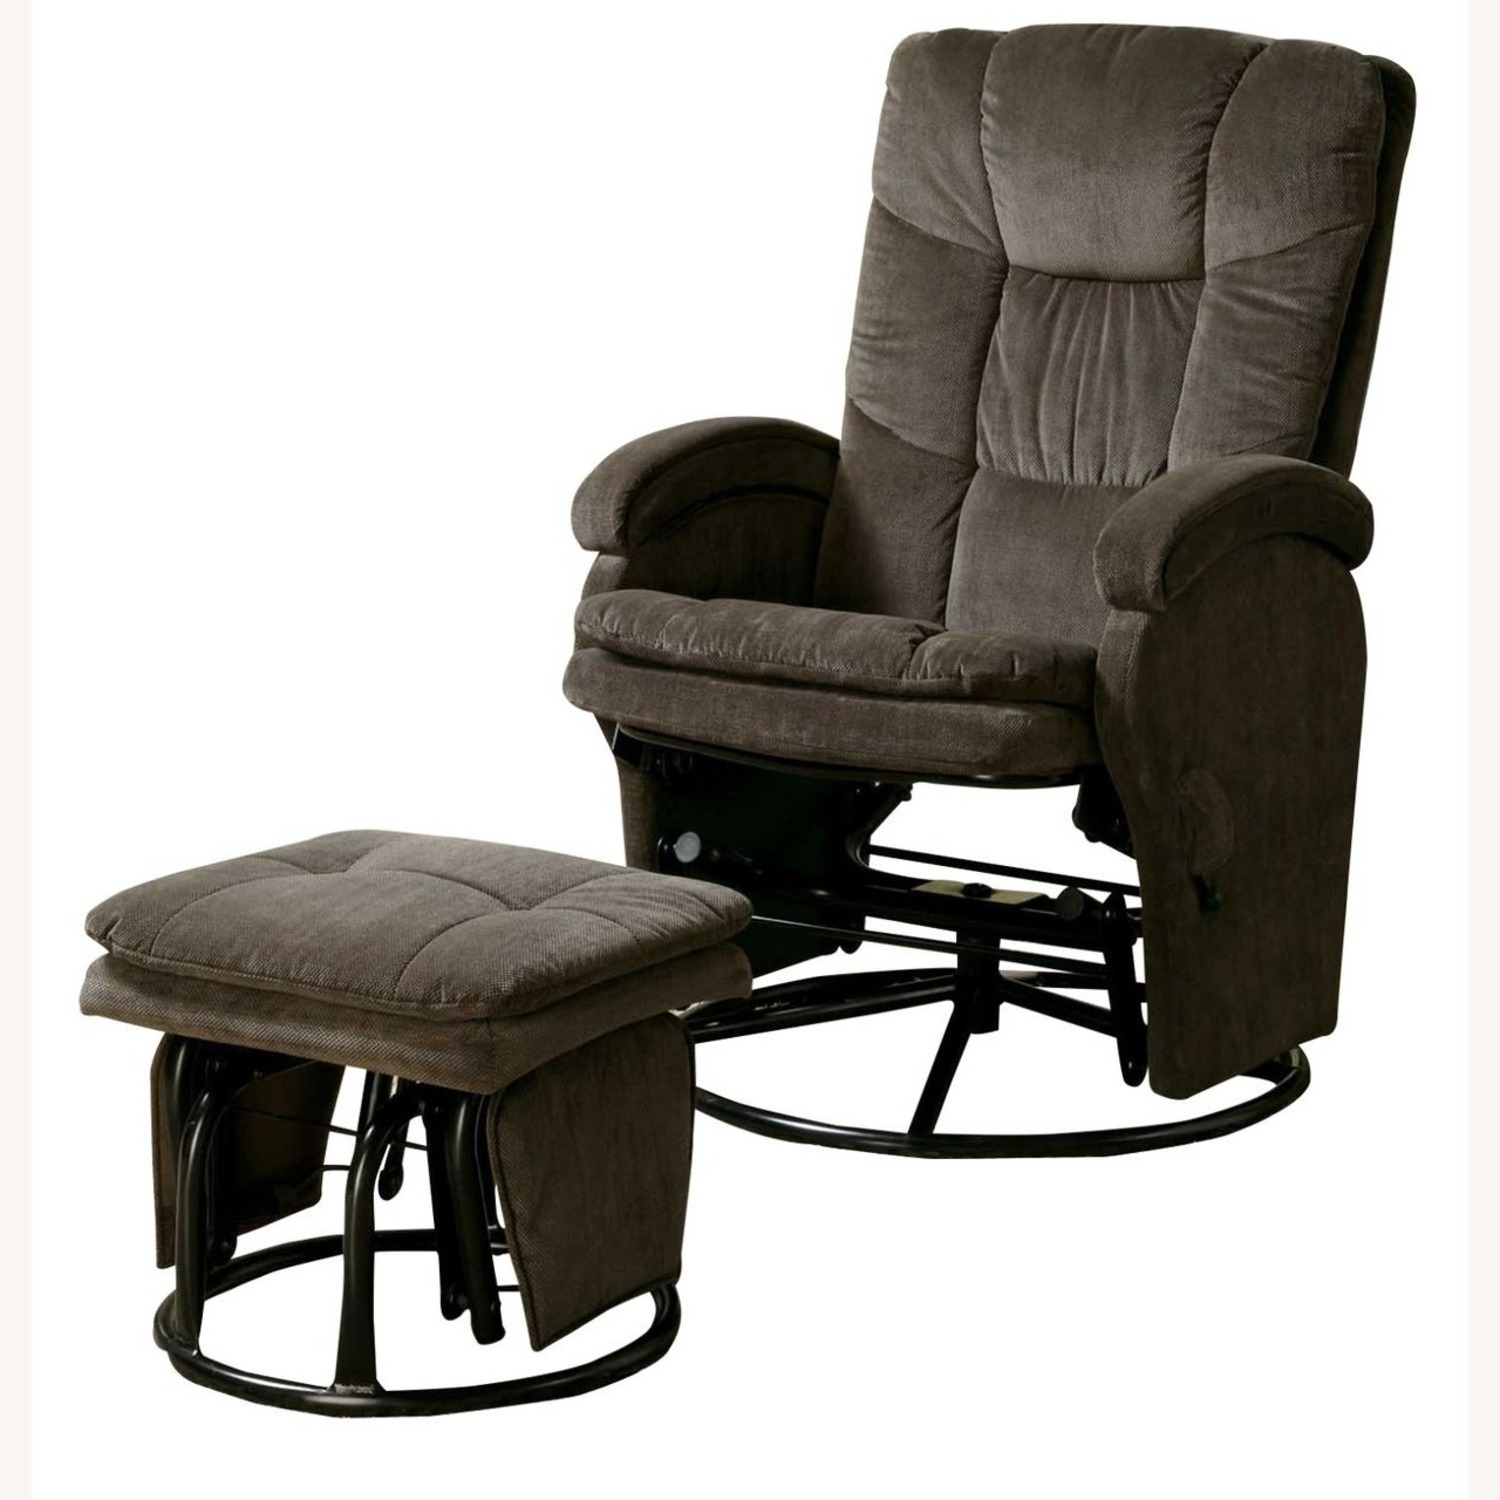 Glider W/ Ottoman In Chocolate Chenille Upholstery - image-1